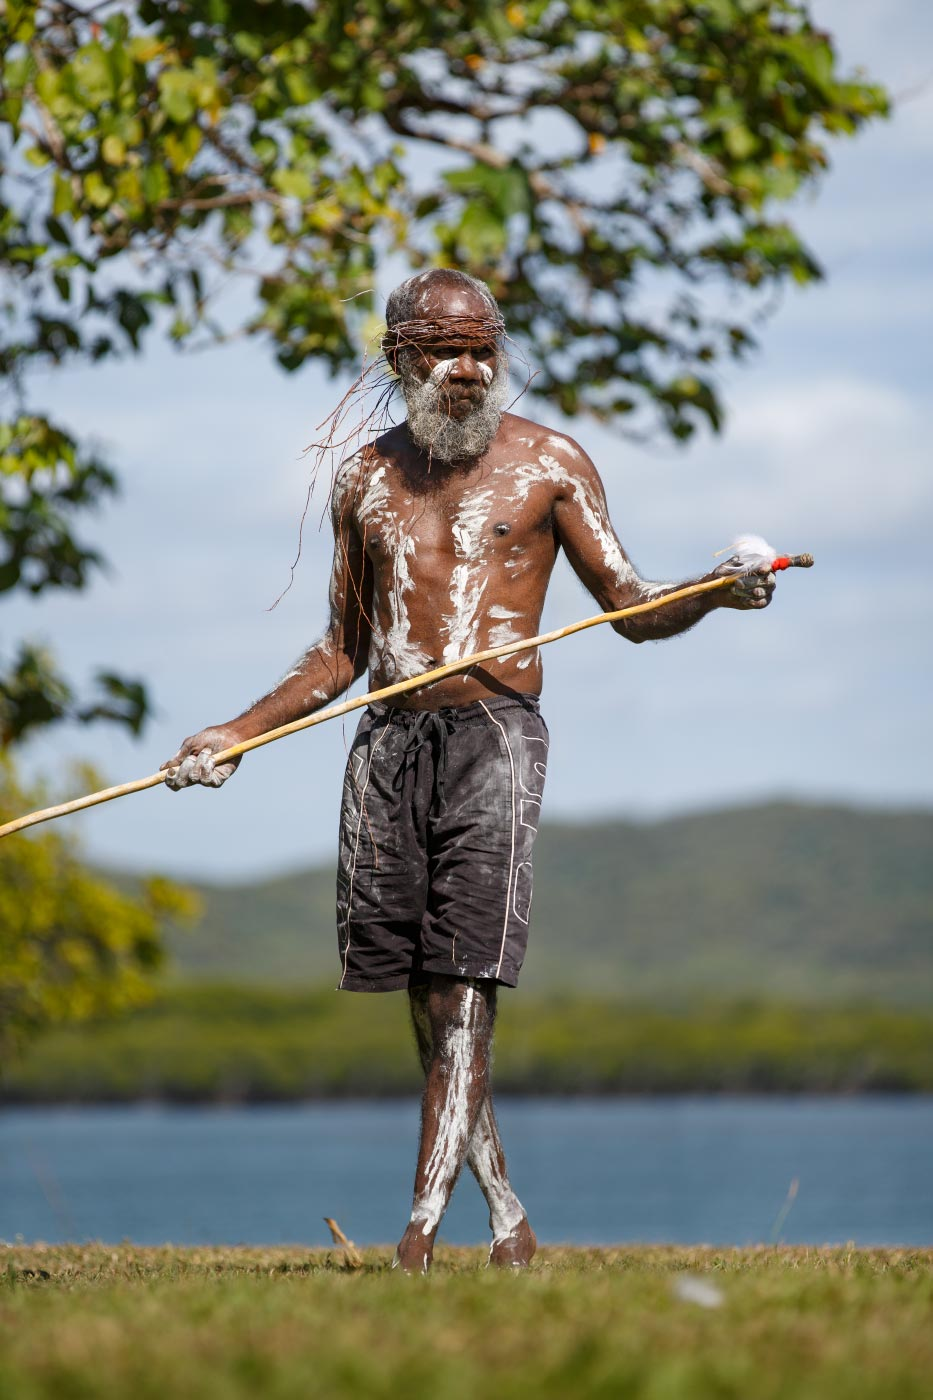 Colour photo of a man in costume and holding a spear as part of an outdoor festival. - click to view larger image